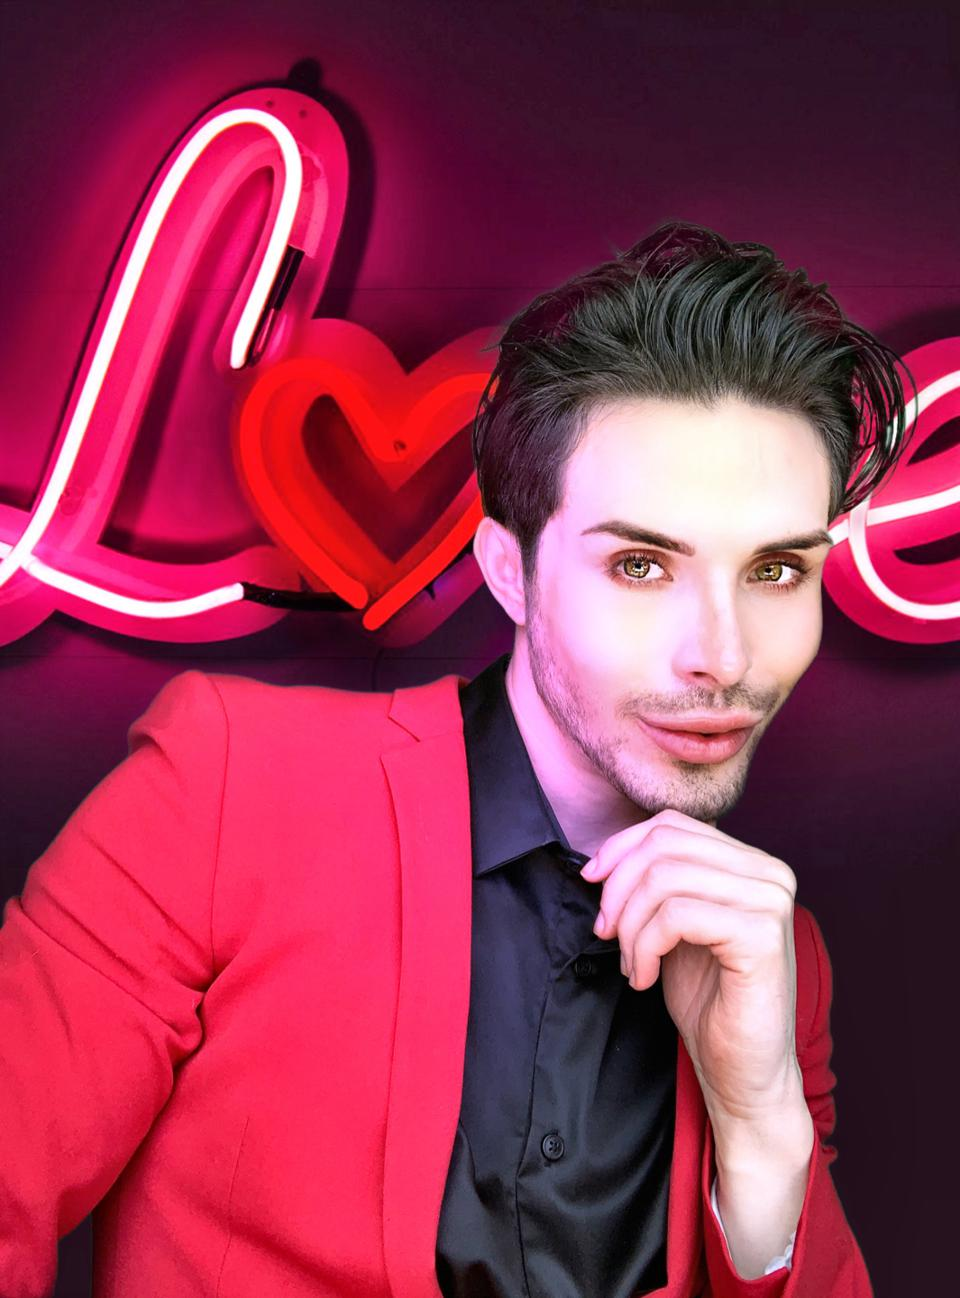 Brandan Rader looks into the camera in front of a neon sign that says LOVE.